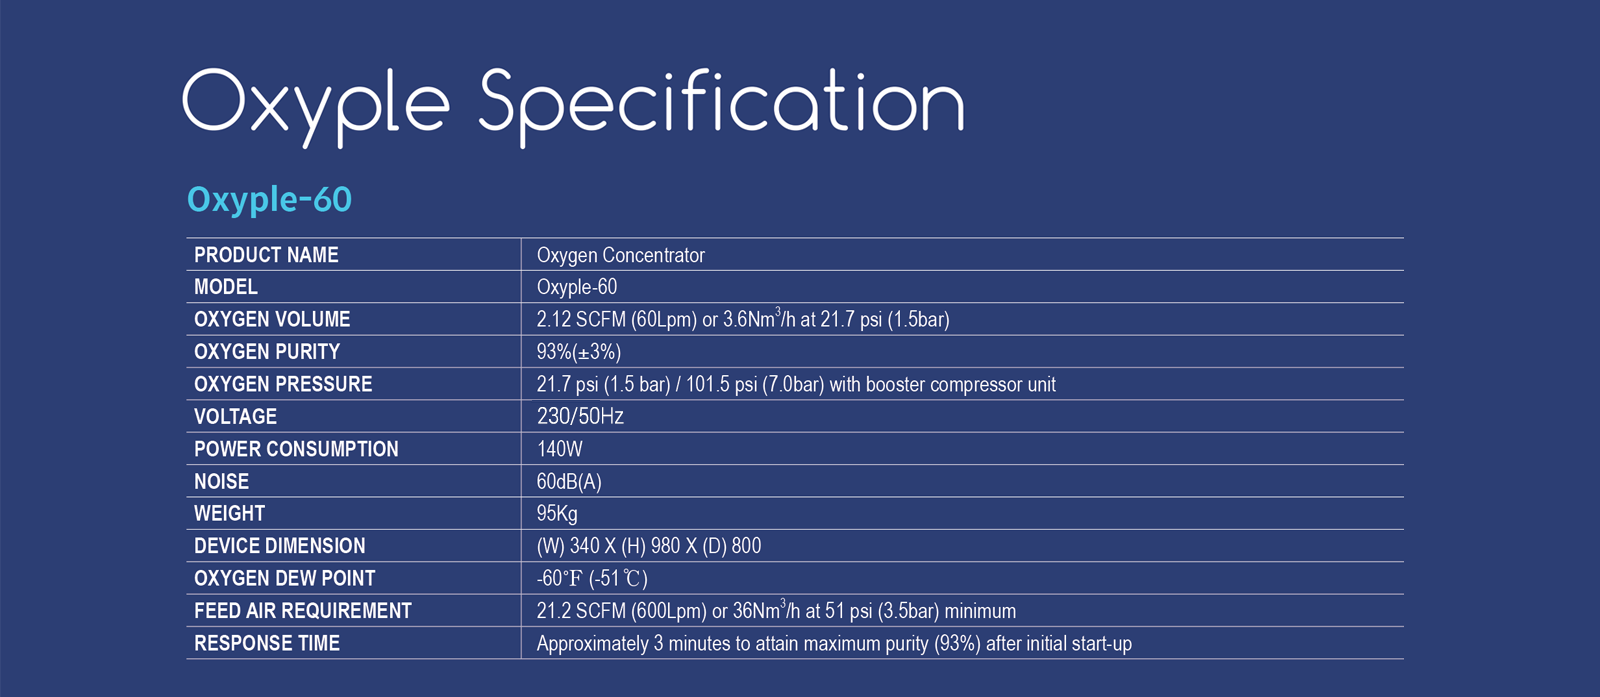 oxygen concentrator oxyple specification oxyple 60